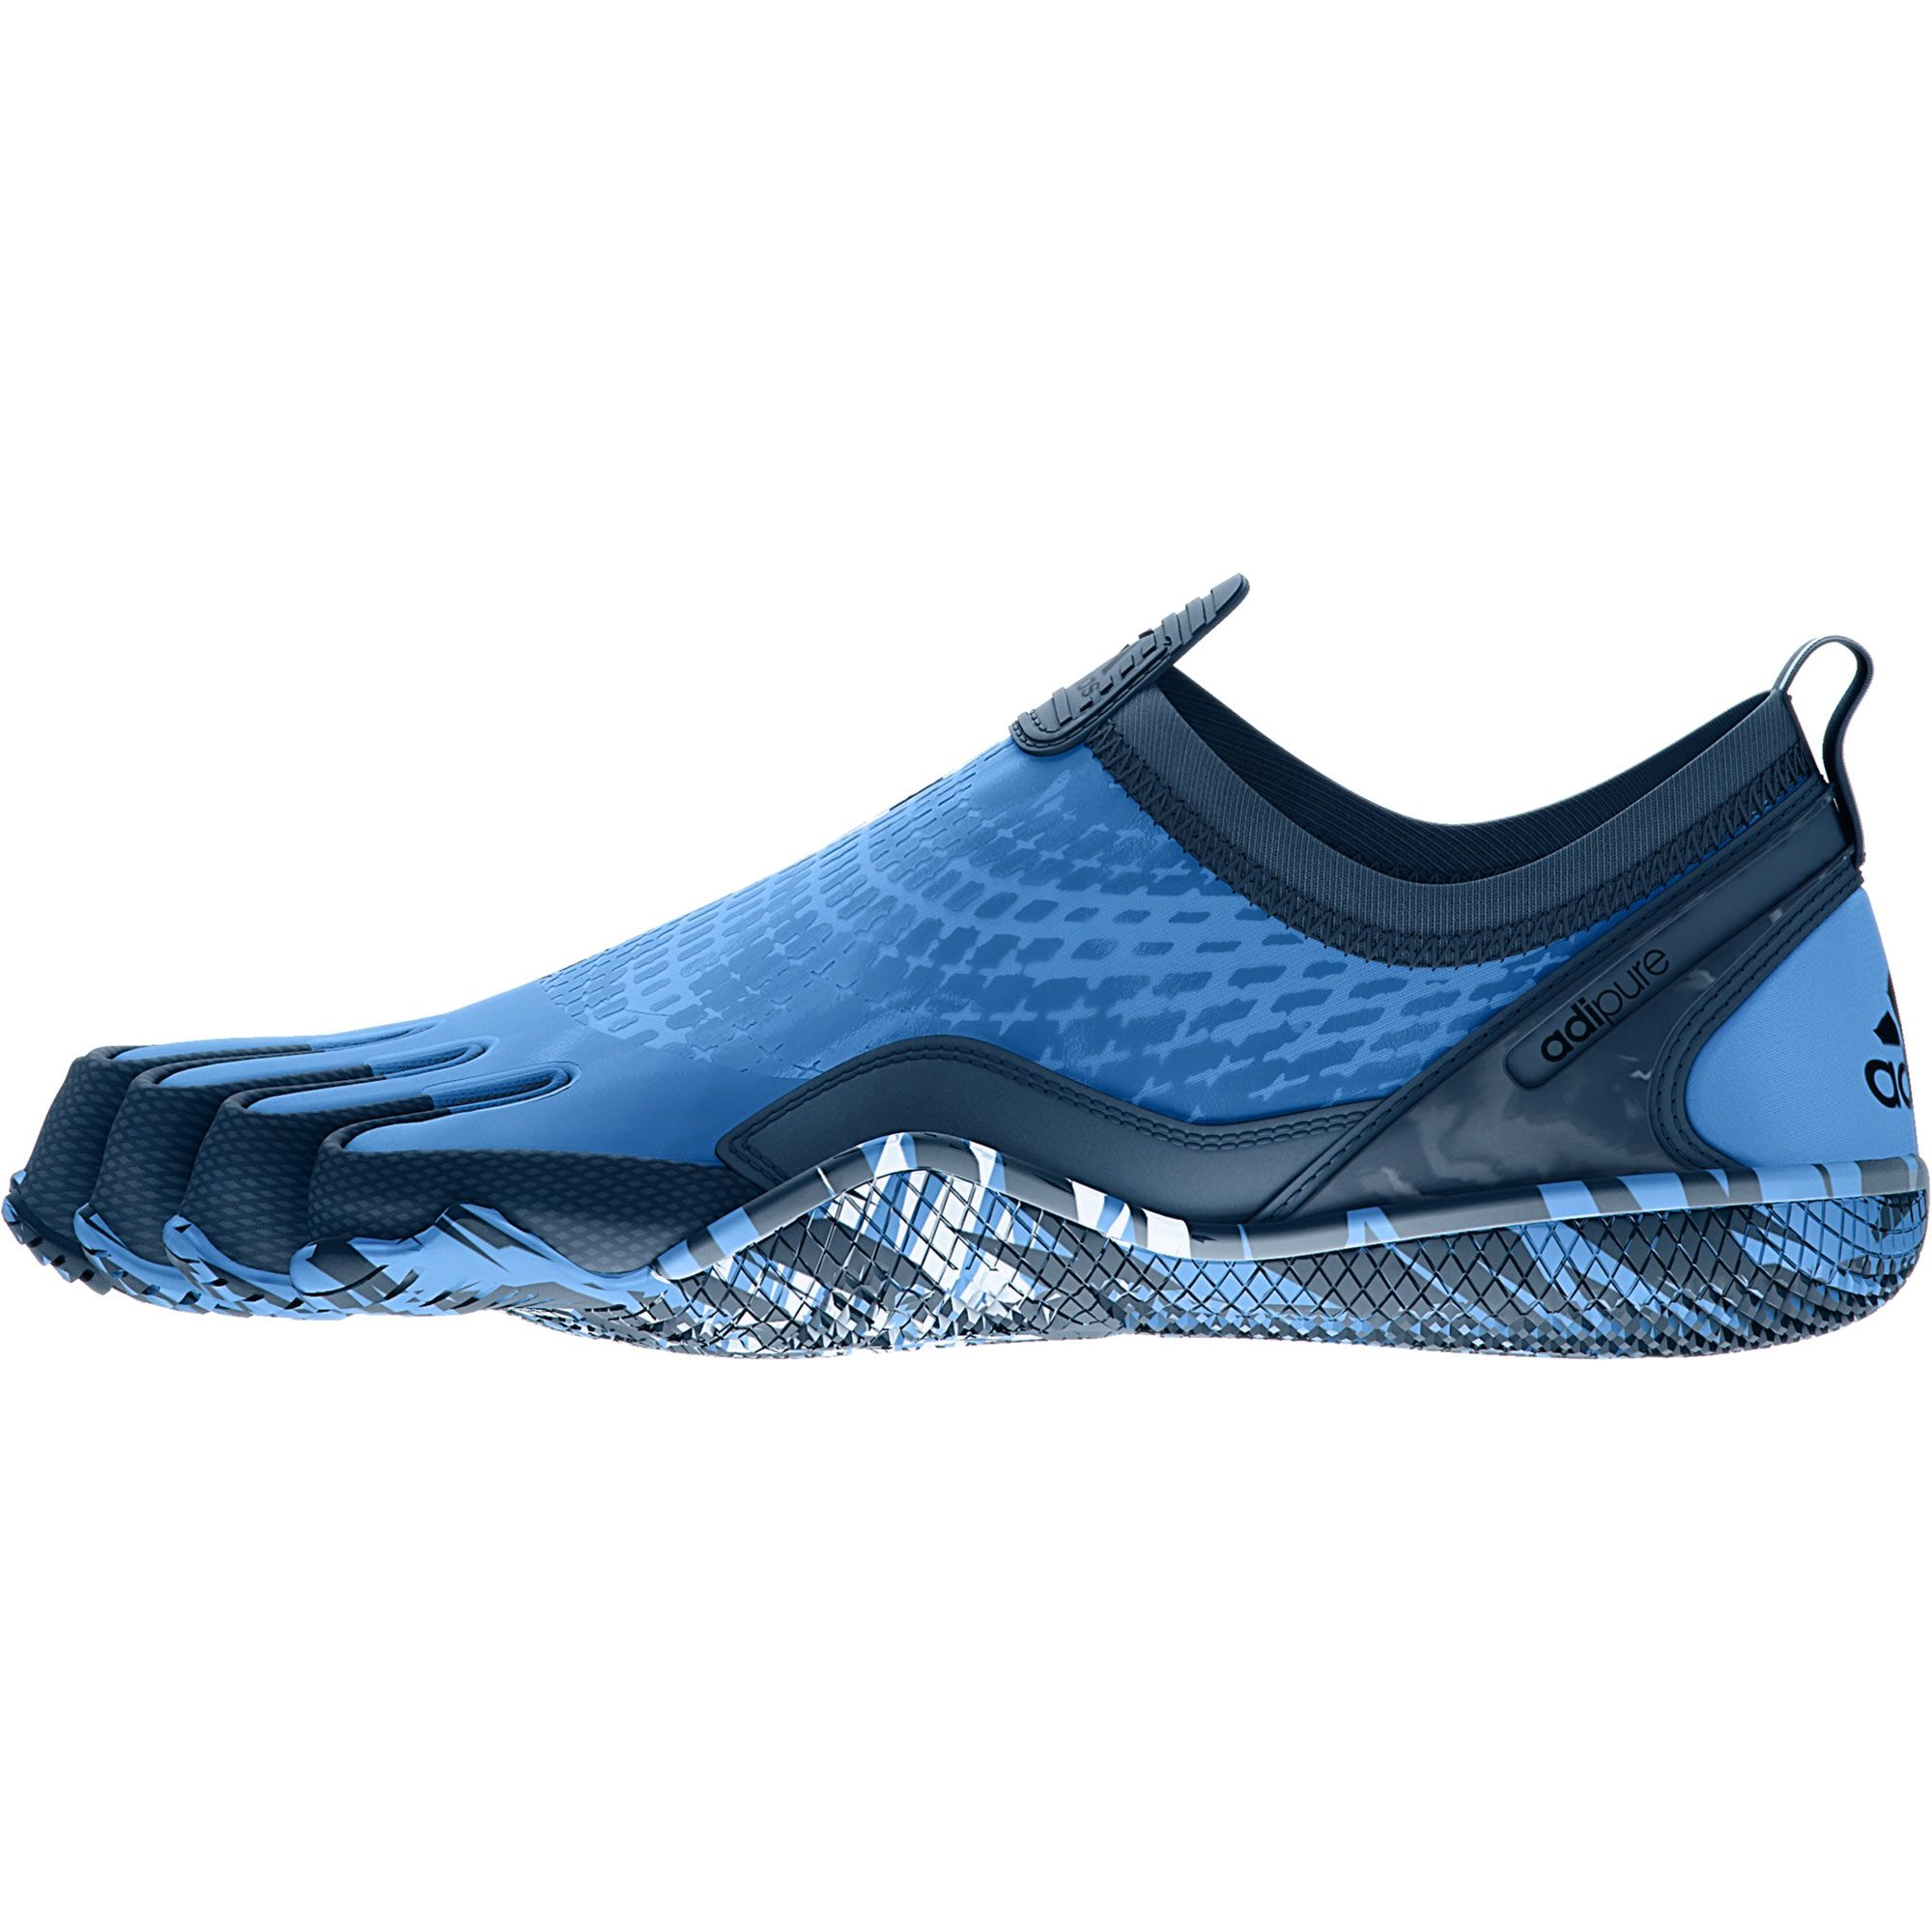 adidas Men's Adipure Trainer 1.1 Running Shoes Blue Size